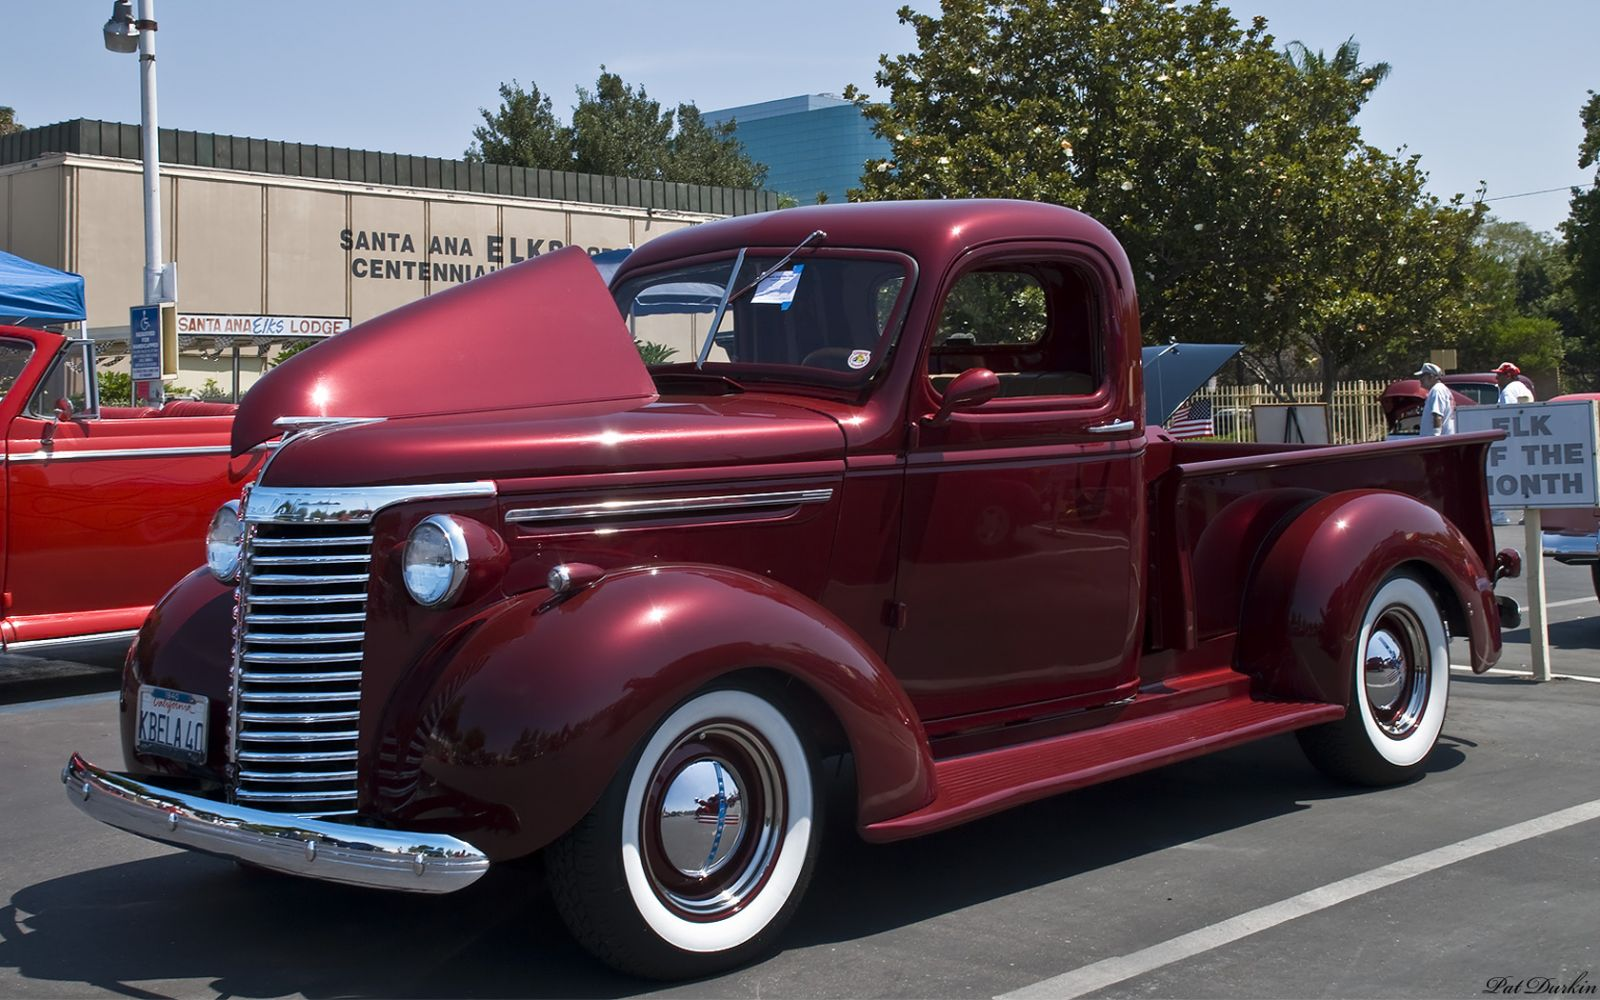 1940 Chevrolet pickup - burgundy metallic - fvl